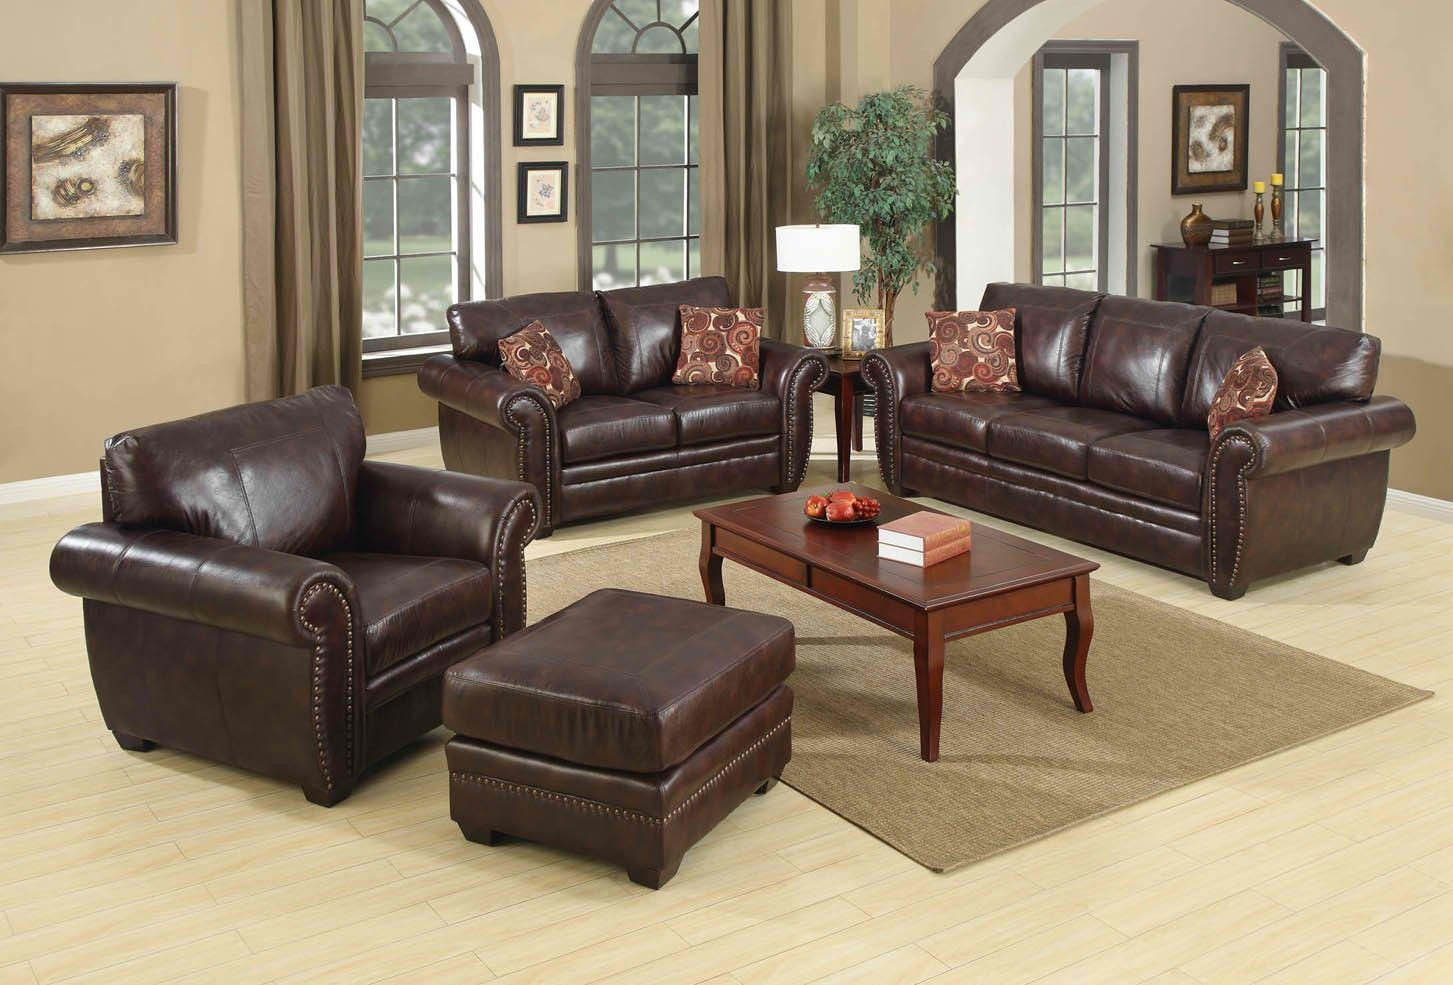 Dark Brown Couch Wall Colors For Brown Furniture List 17 Ideas In Best